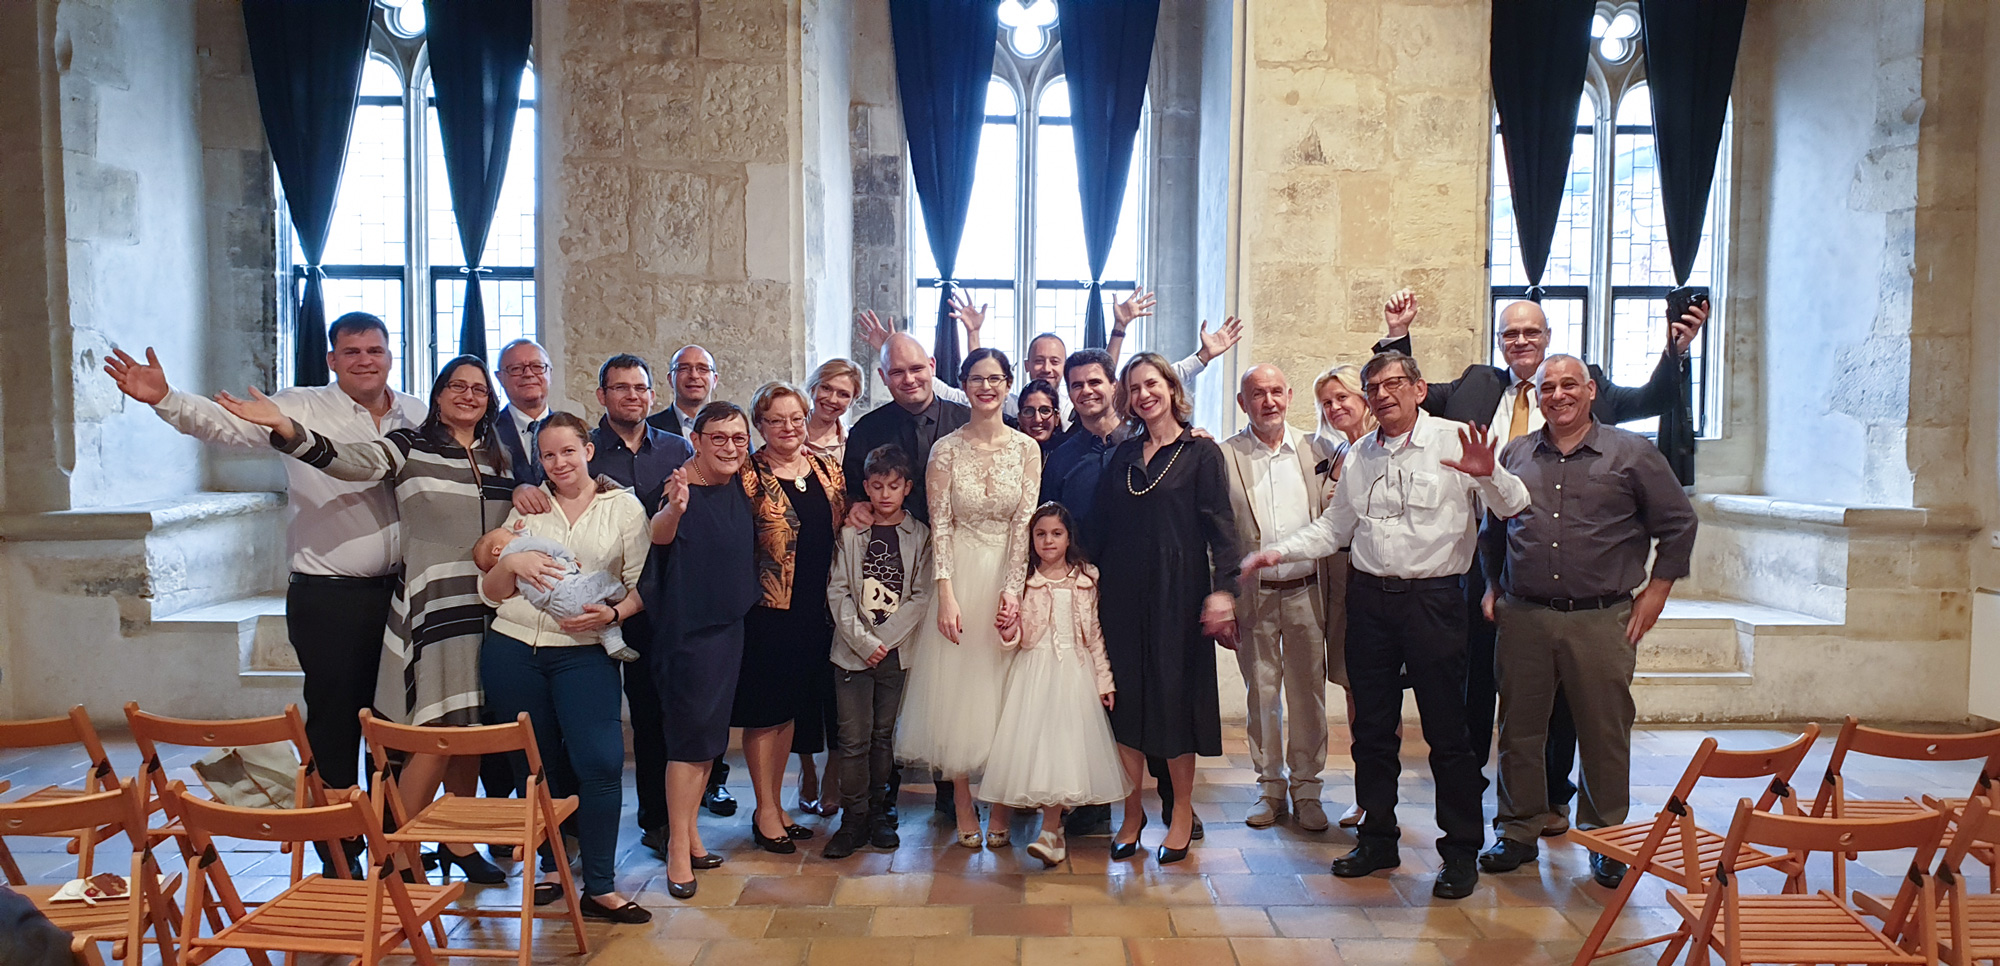 Family and friends photo - Prague wedding at the Stone Bell House